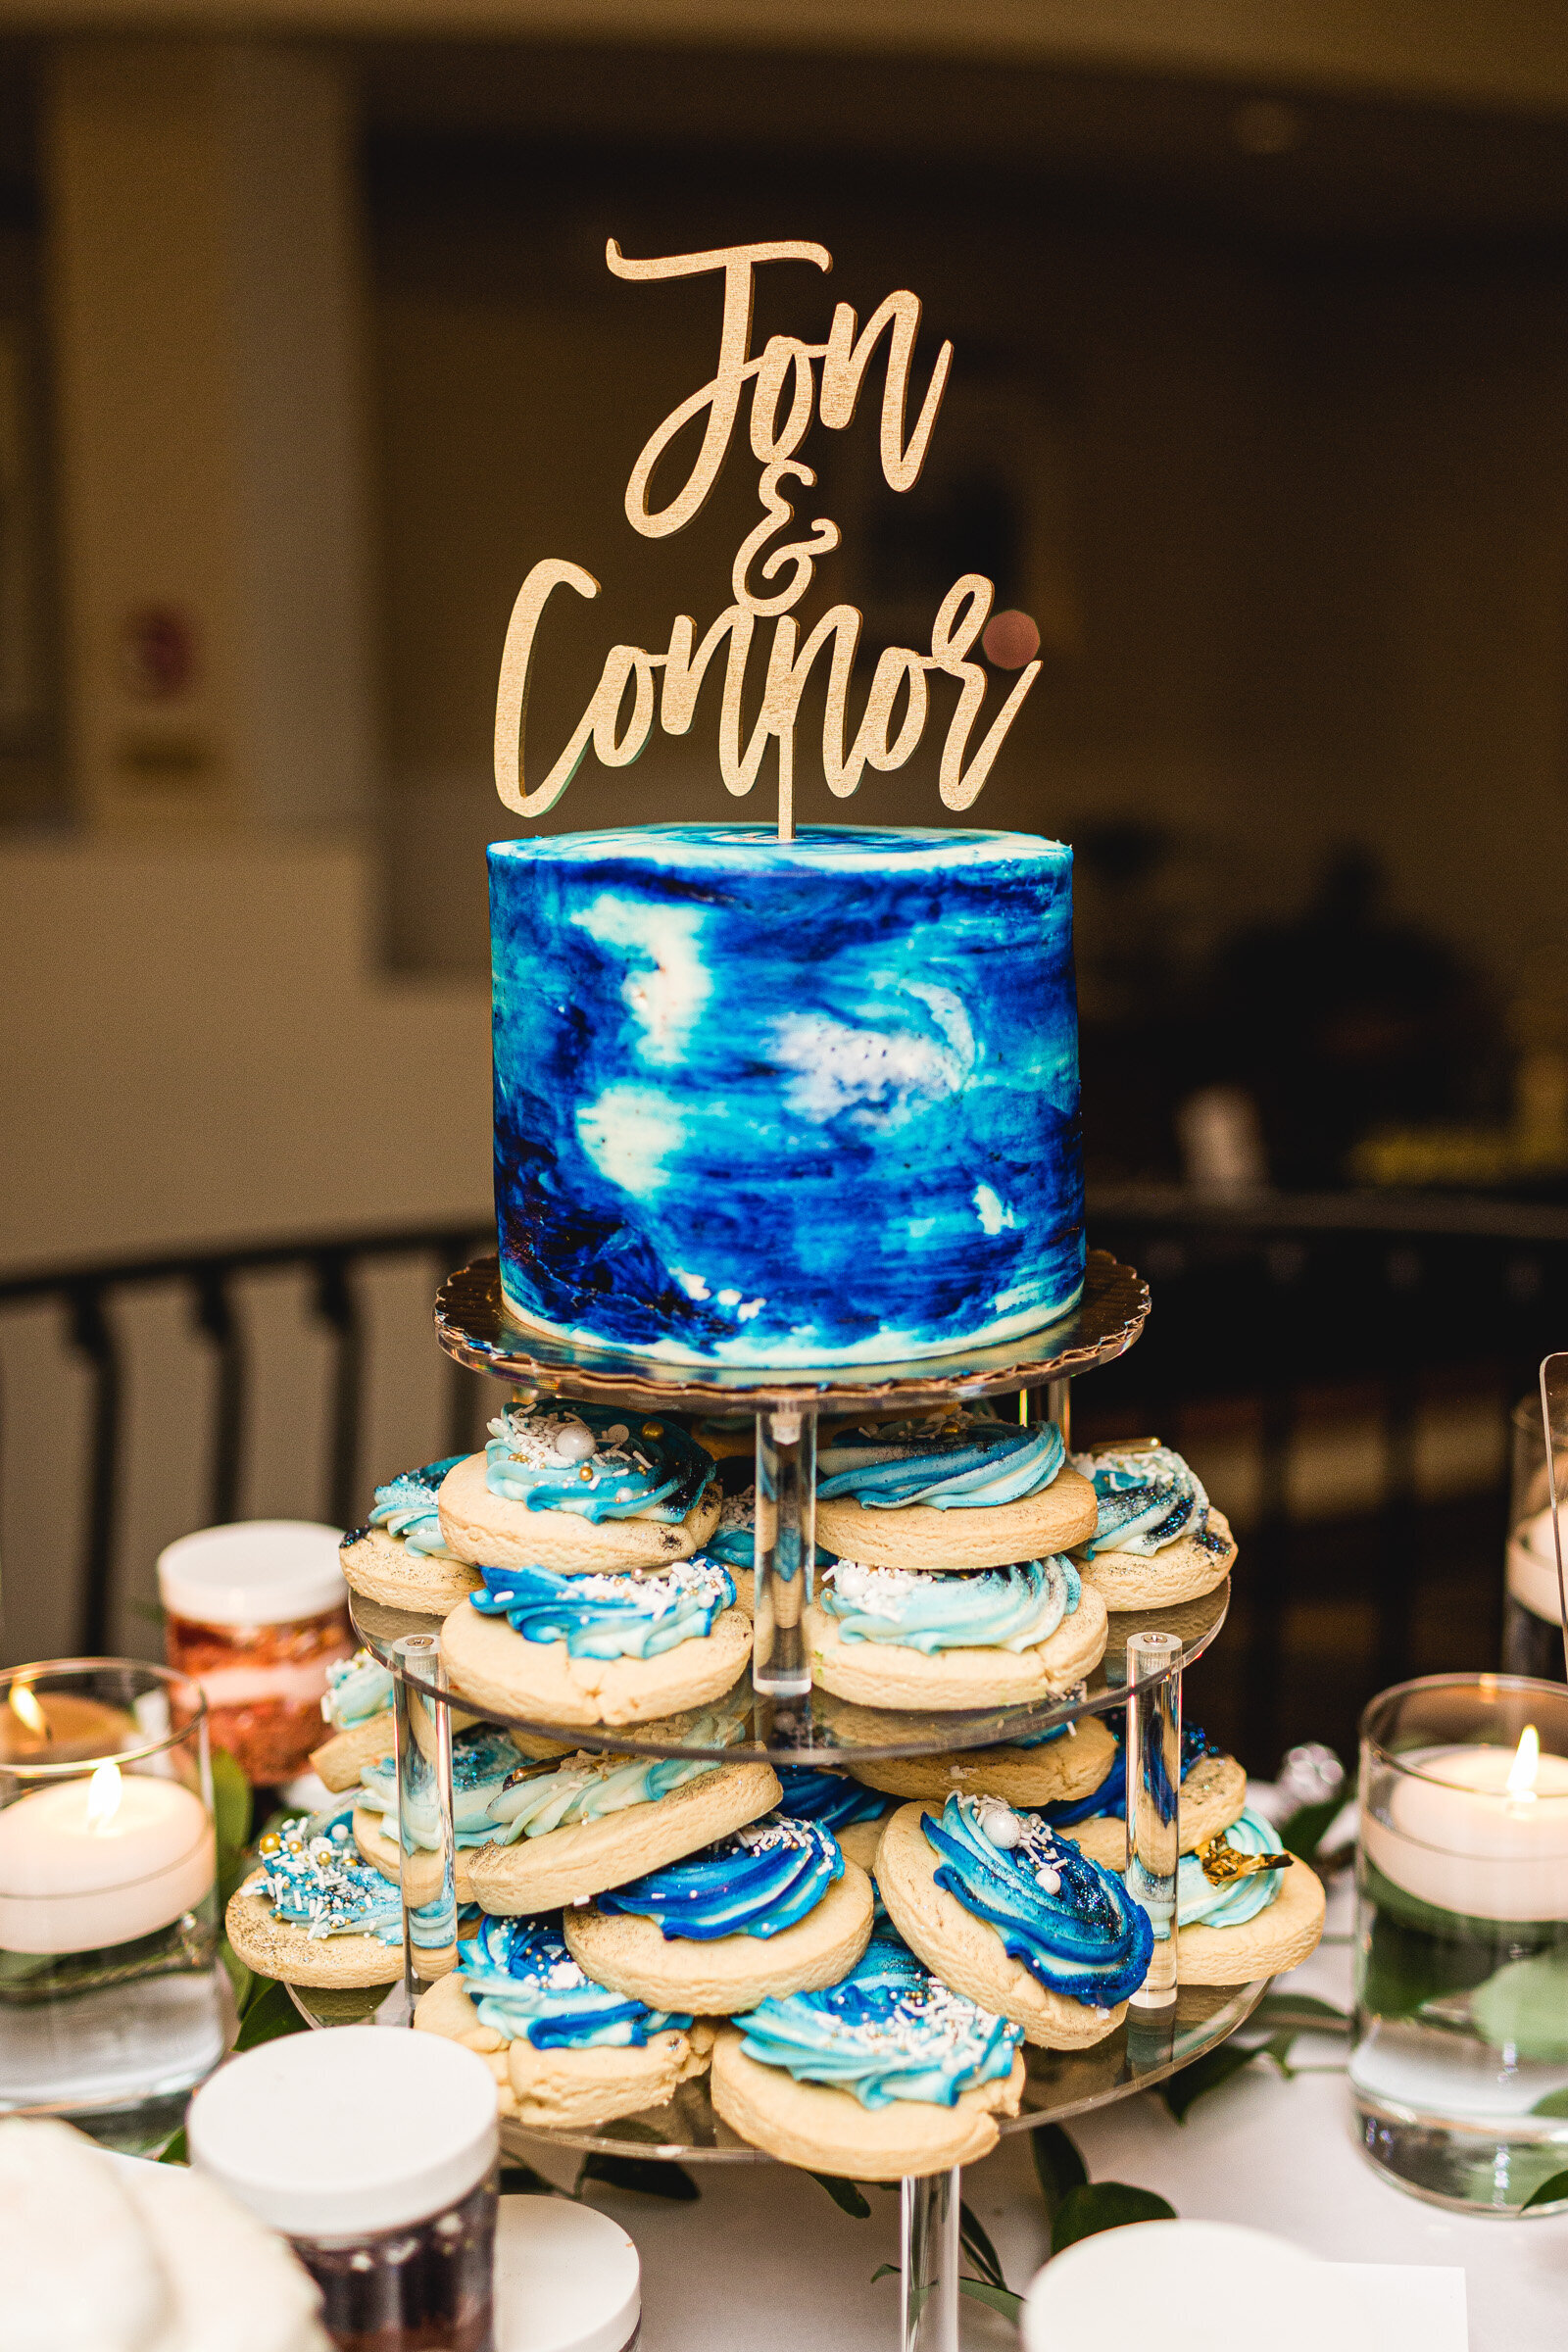 beautiful cake and cookie display at wedding corazon ohio